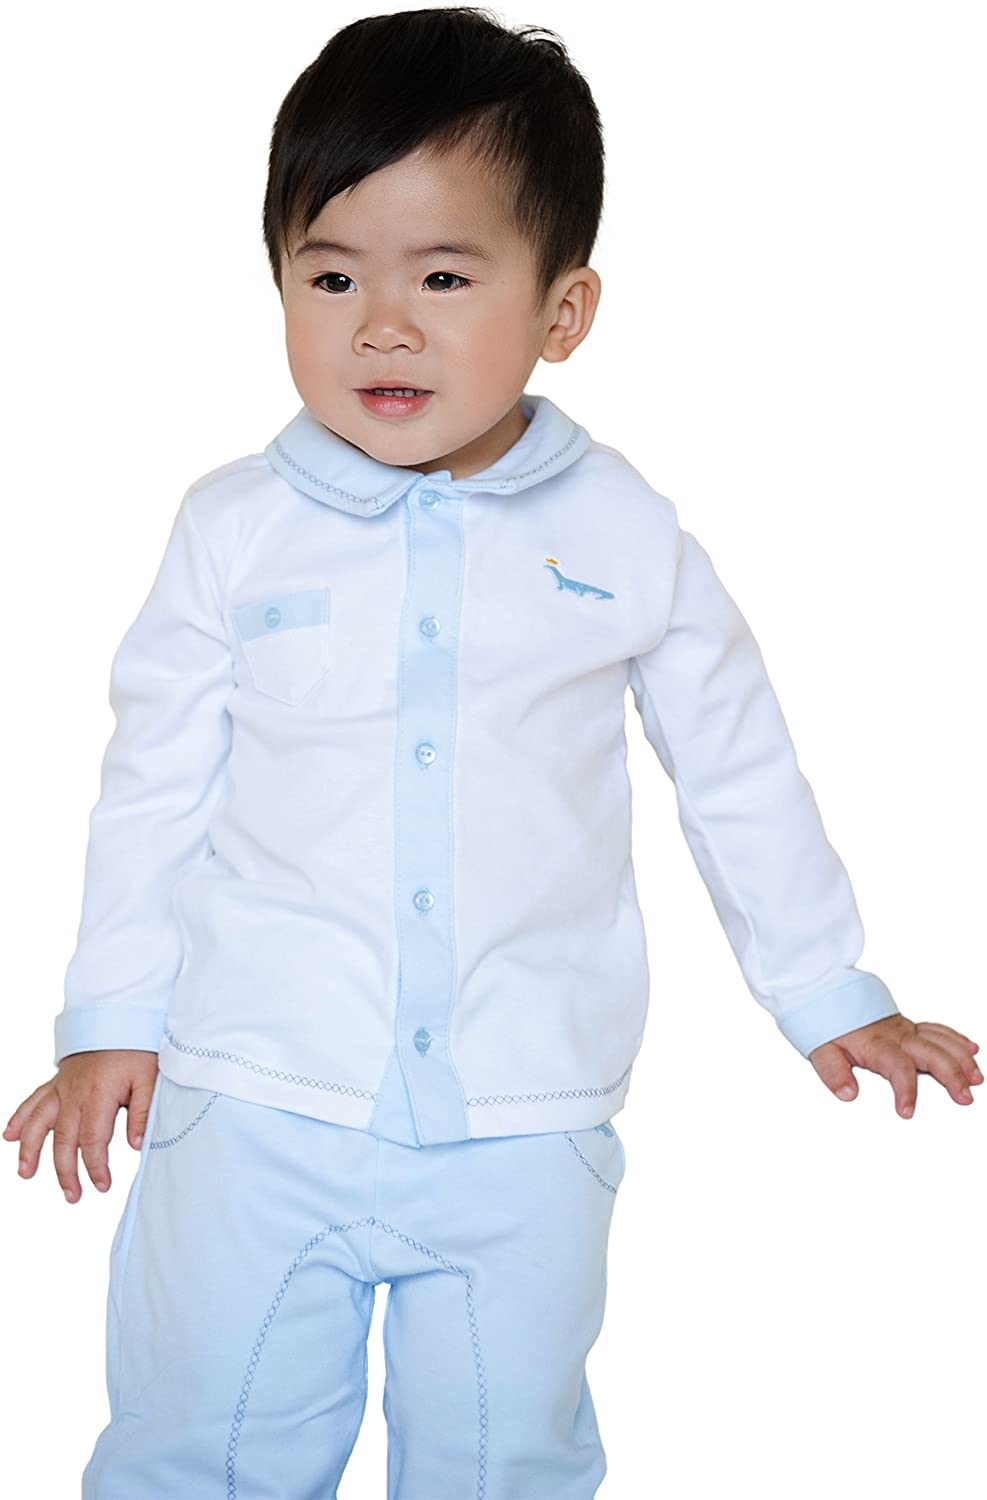 Baby Boys' Pant and Top Set - 100% Pima Cotton Blue and White Outfit